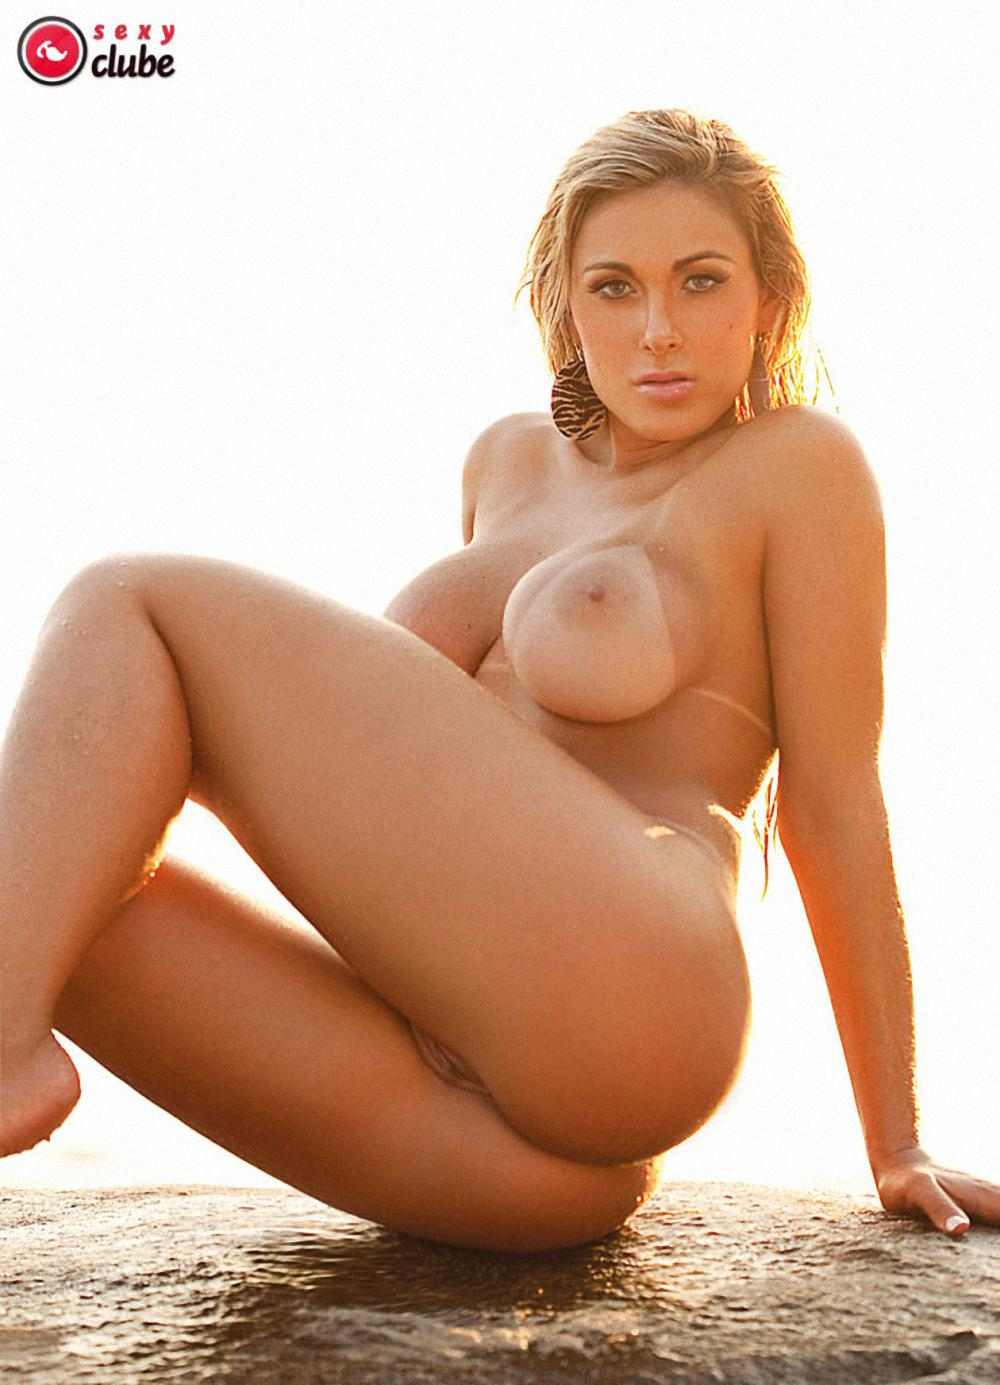 Andressa Urach Video Nua andressa urach - page 7 pictures, naked, oops, topless